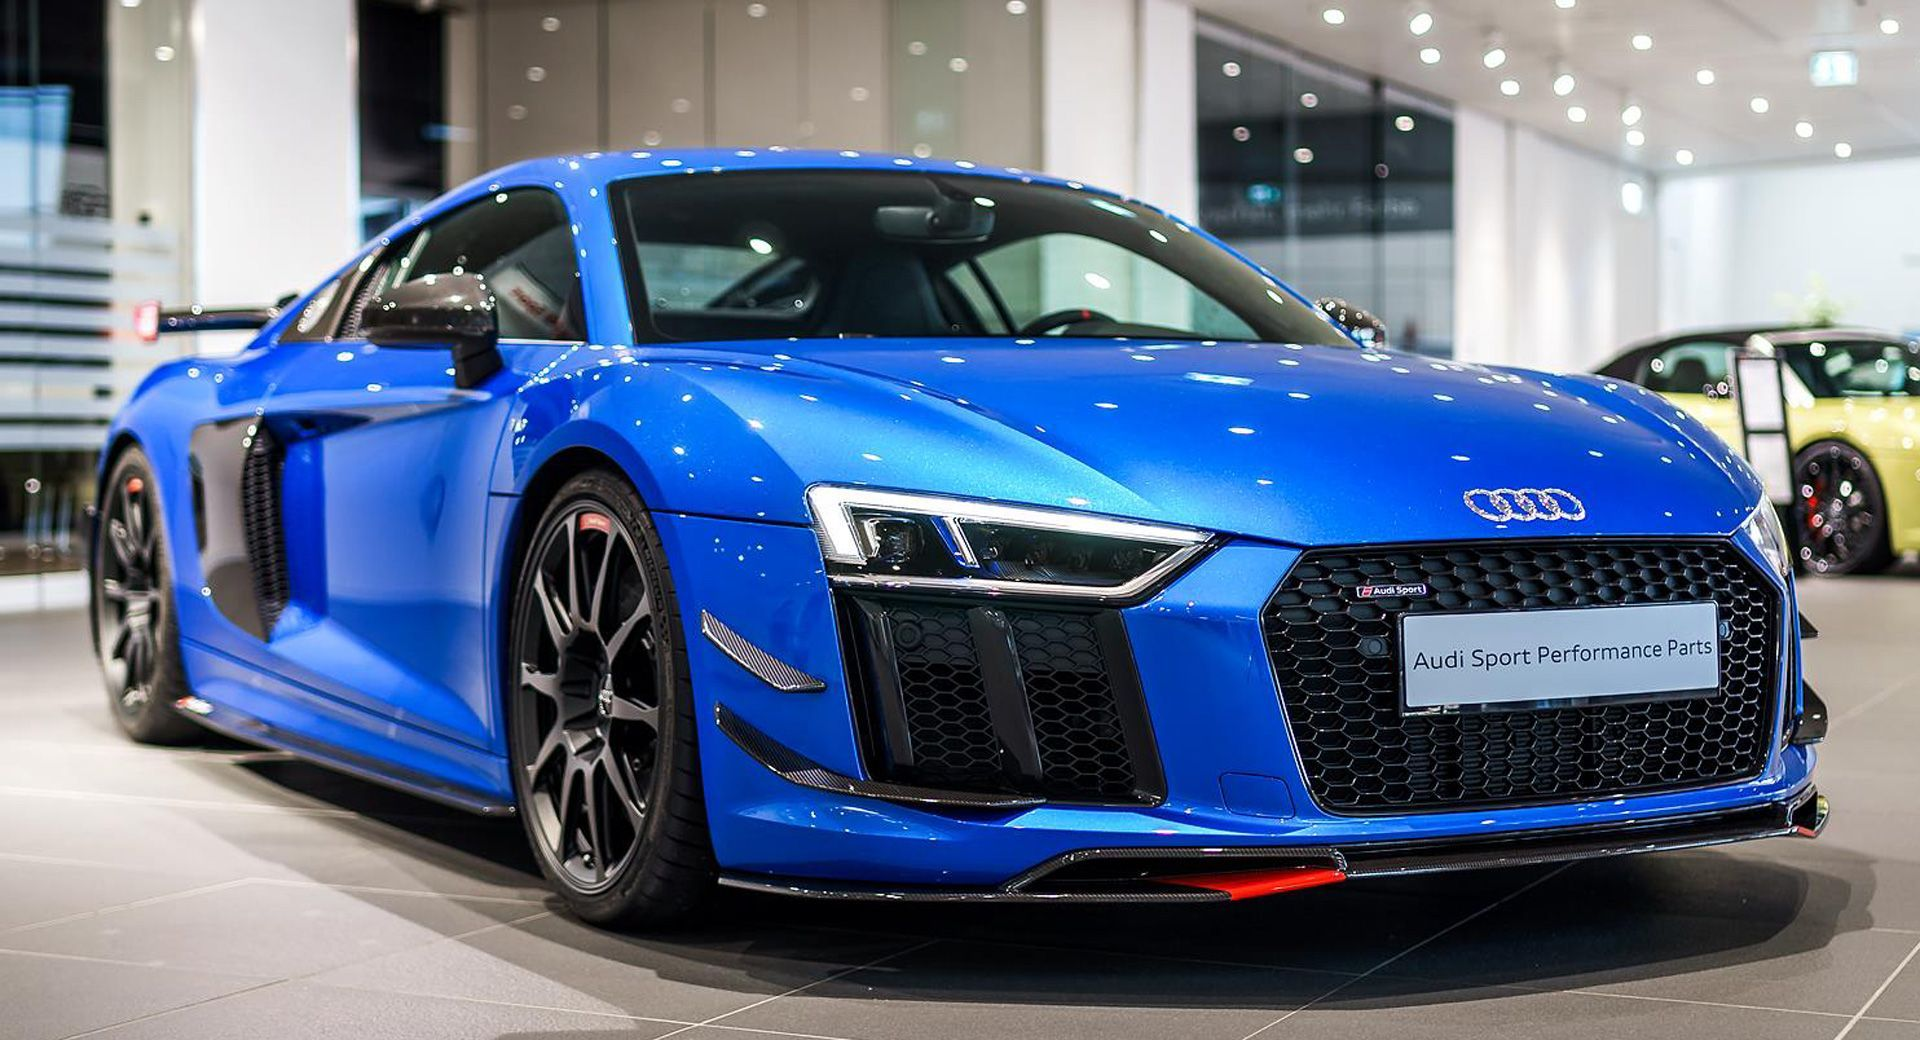 Audi R8 V10 Plus Looks Even Racier With Extra Performance Parts Carscoops Audi R8 V10 Plus Audi R8 V10 Audi R8